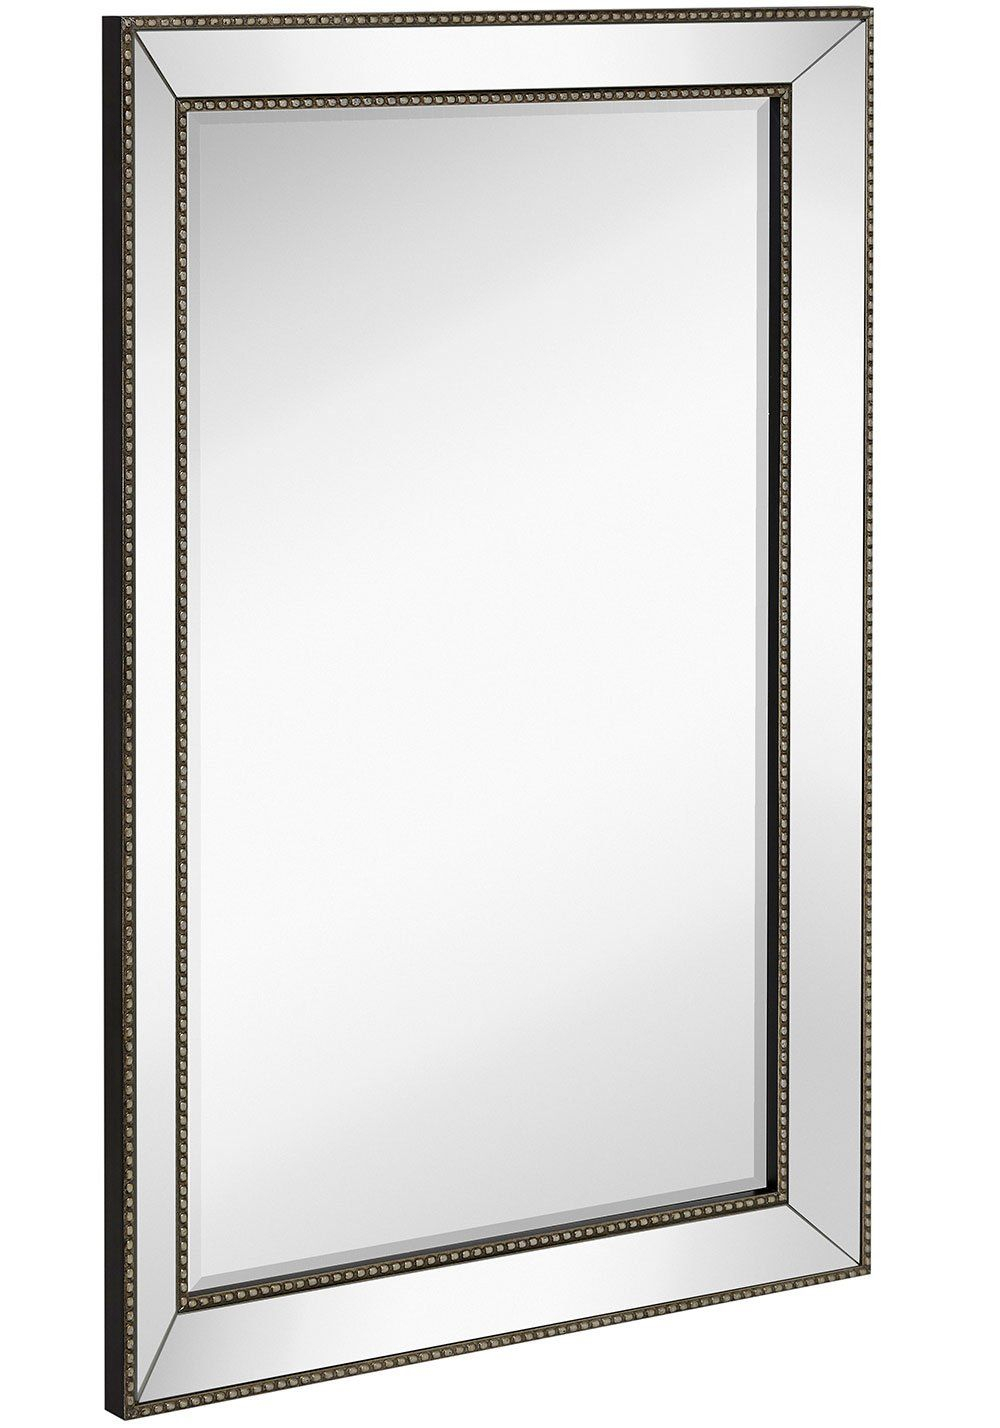 Large Framed Wall Mirror With Angled Beveled Mirror Frame Intended For Silver Frame Accent Mirrors (View 9 of 20)